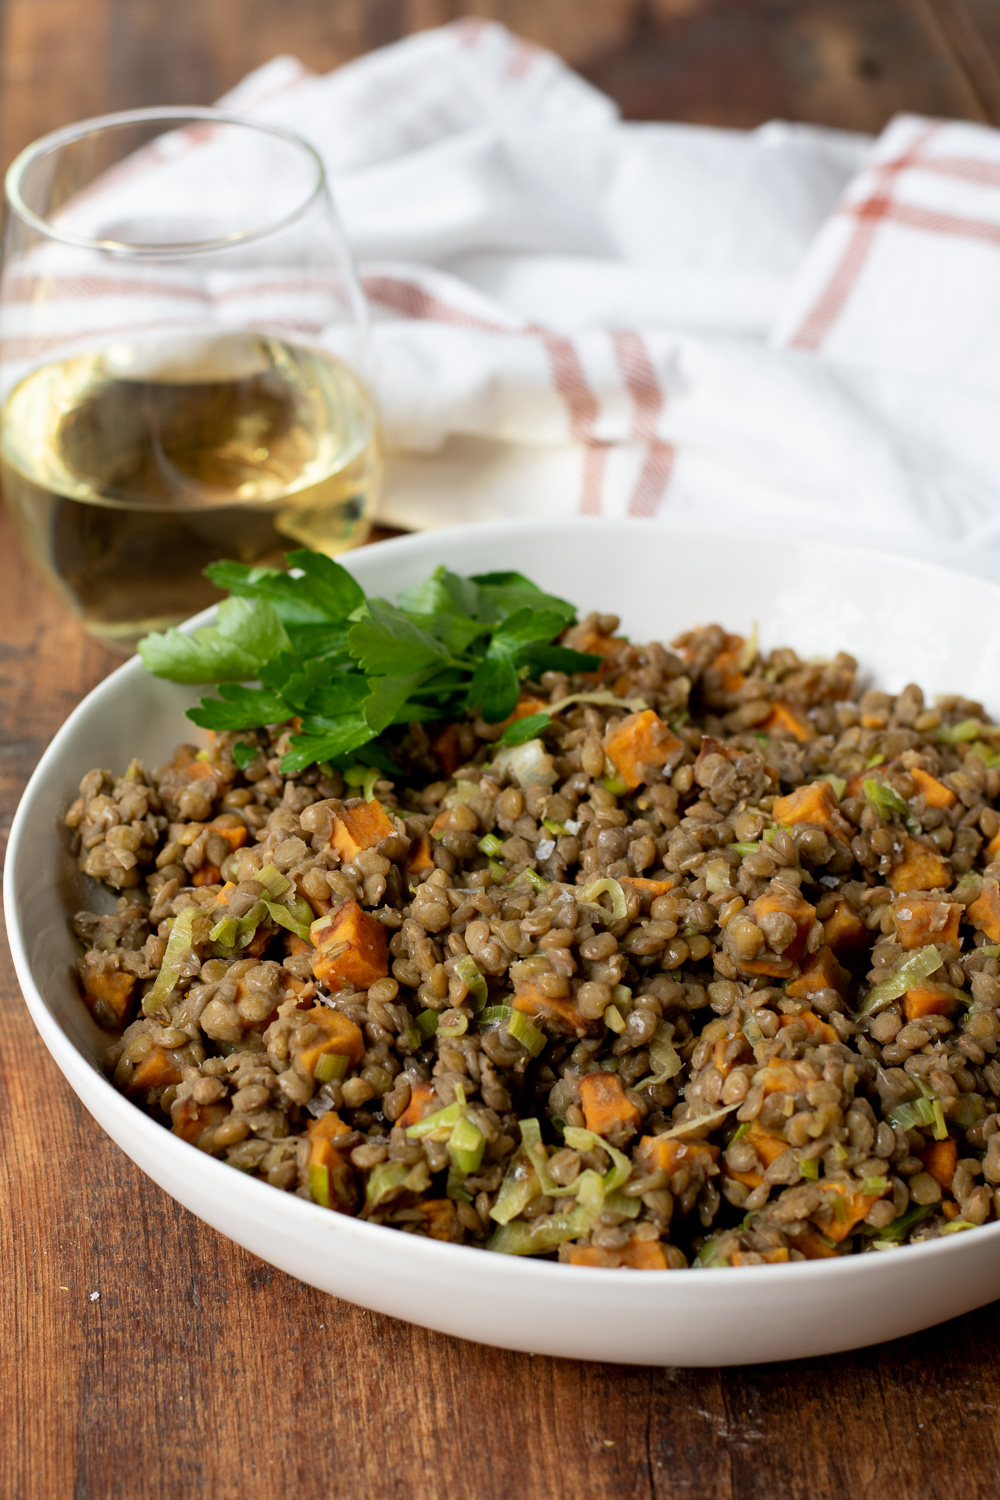 Lentil Salad with Roasted Root Vegetables